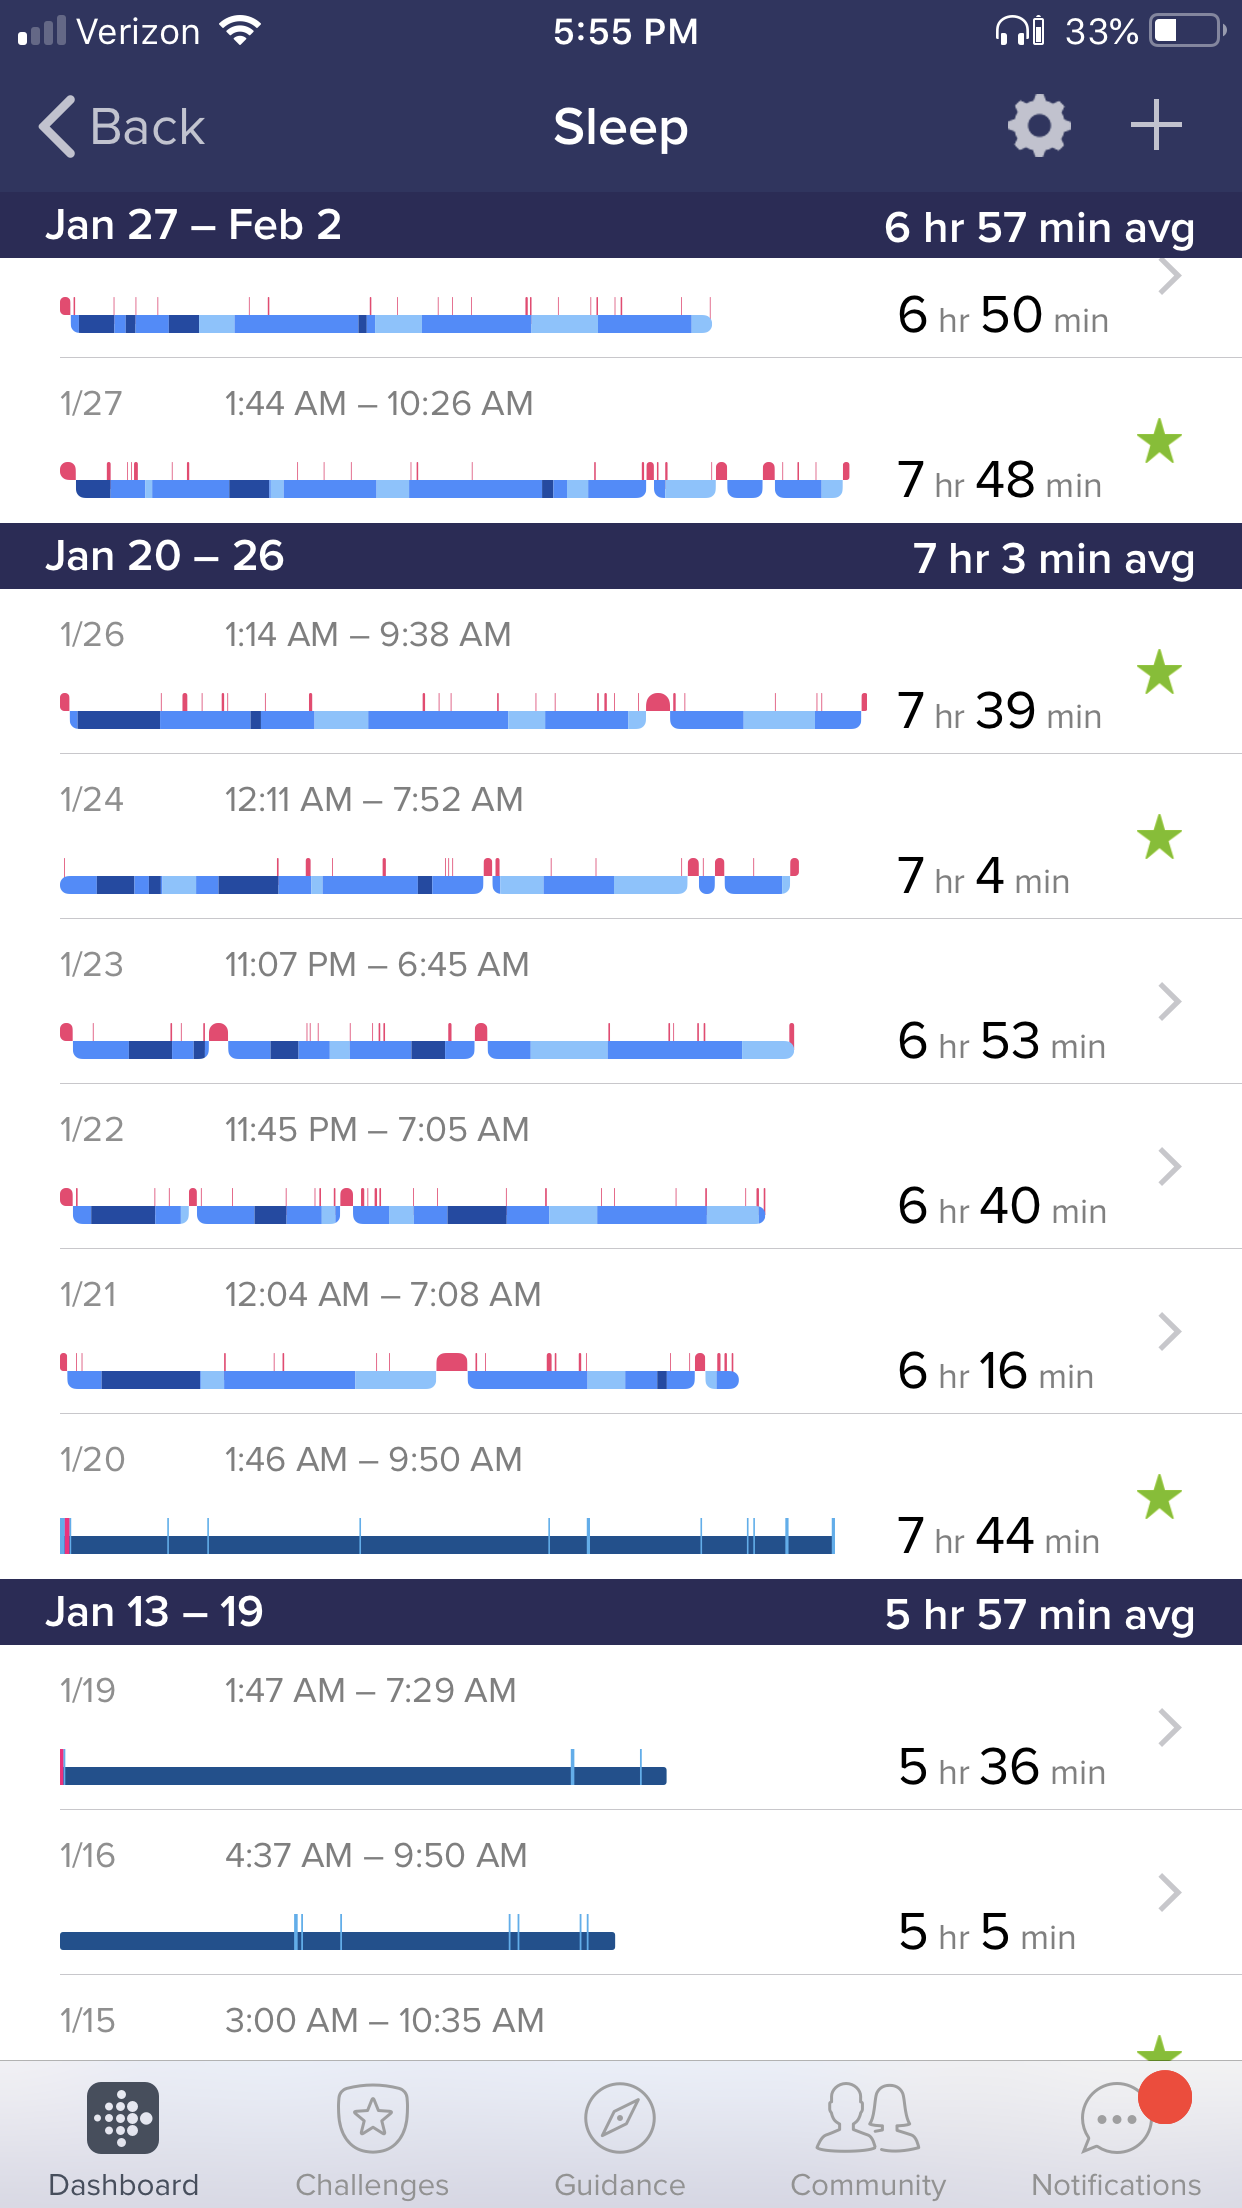 Here's a little view of how I'd been sleeping when I neglect sleep hygiene practices. I usually aim for 7 hours a night minimum, but even that's a struggle.